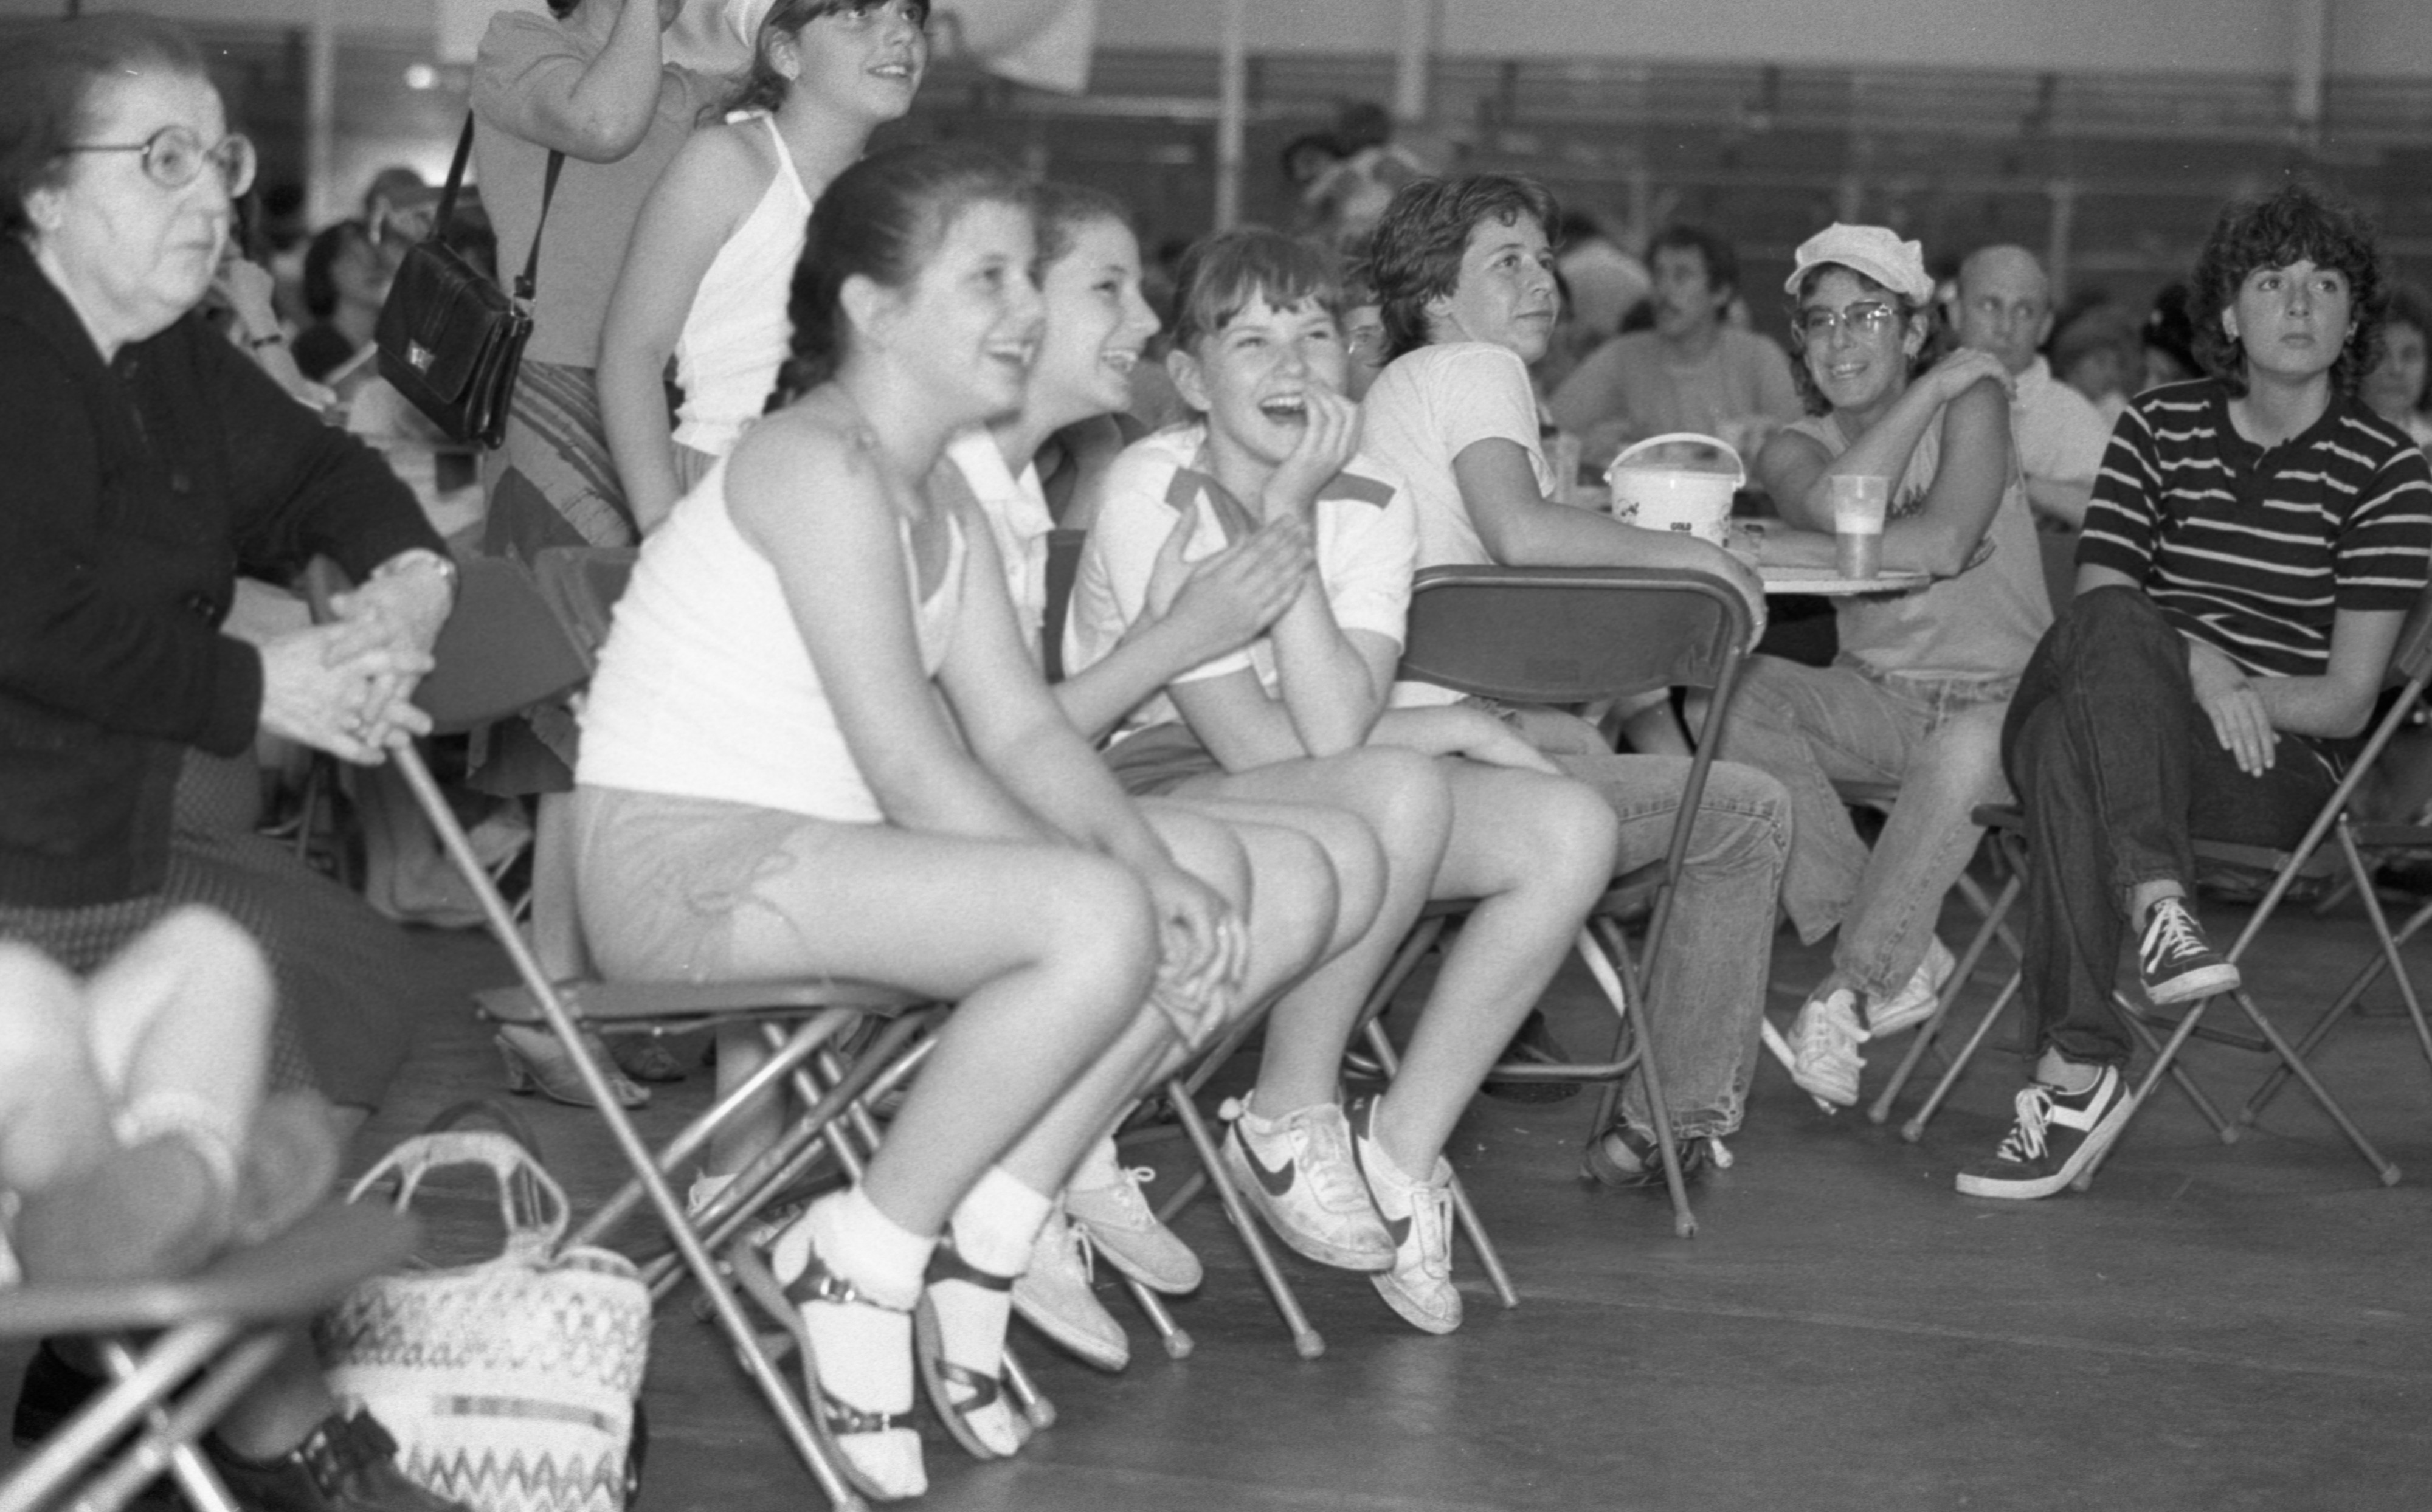 A Crowd Watches The St. Nicholas Dancers Perform At The Ya'ssoo Greek Festival, June 1984 image